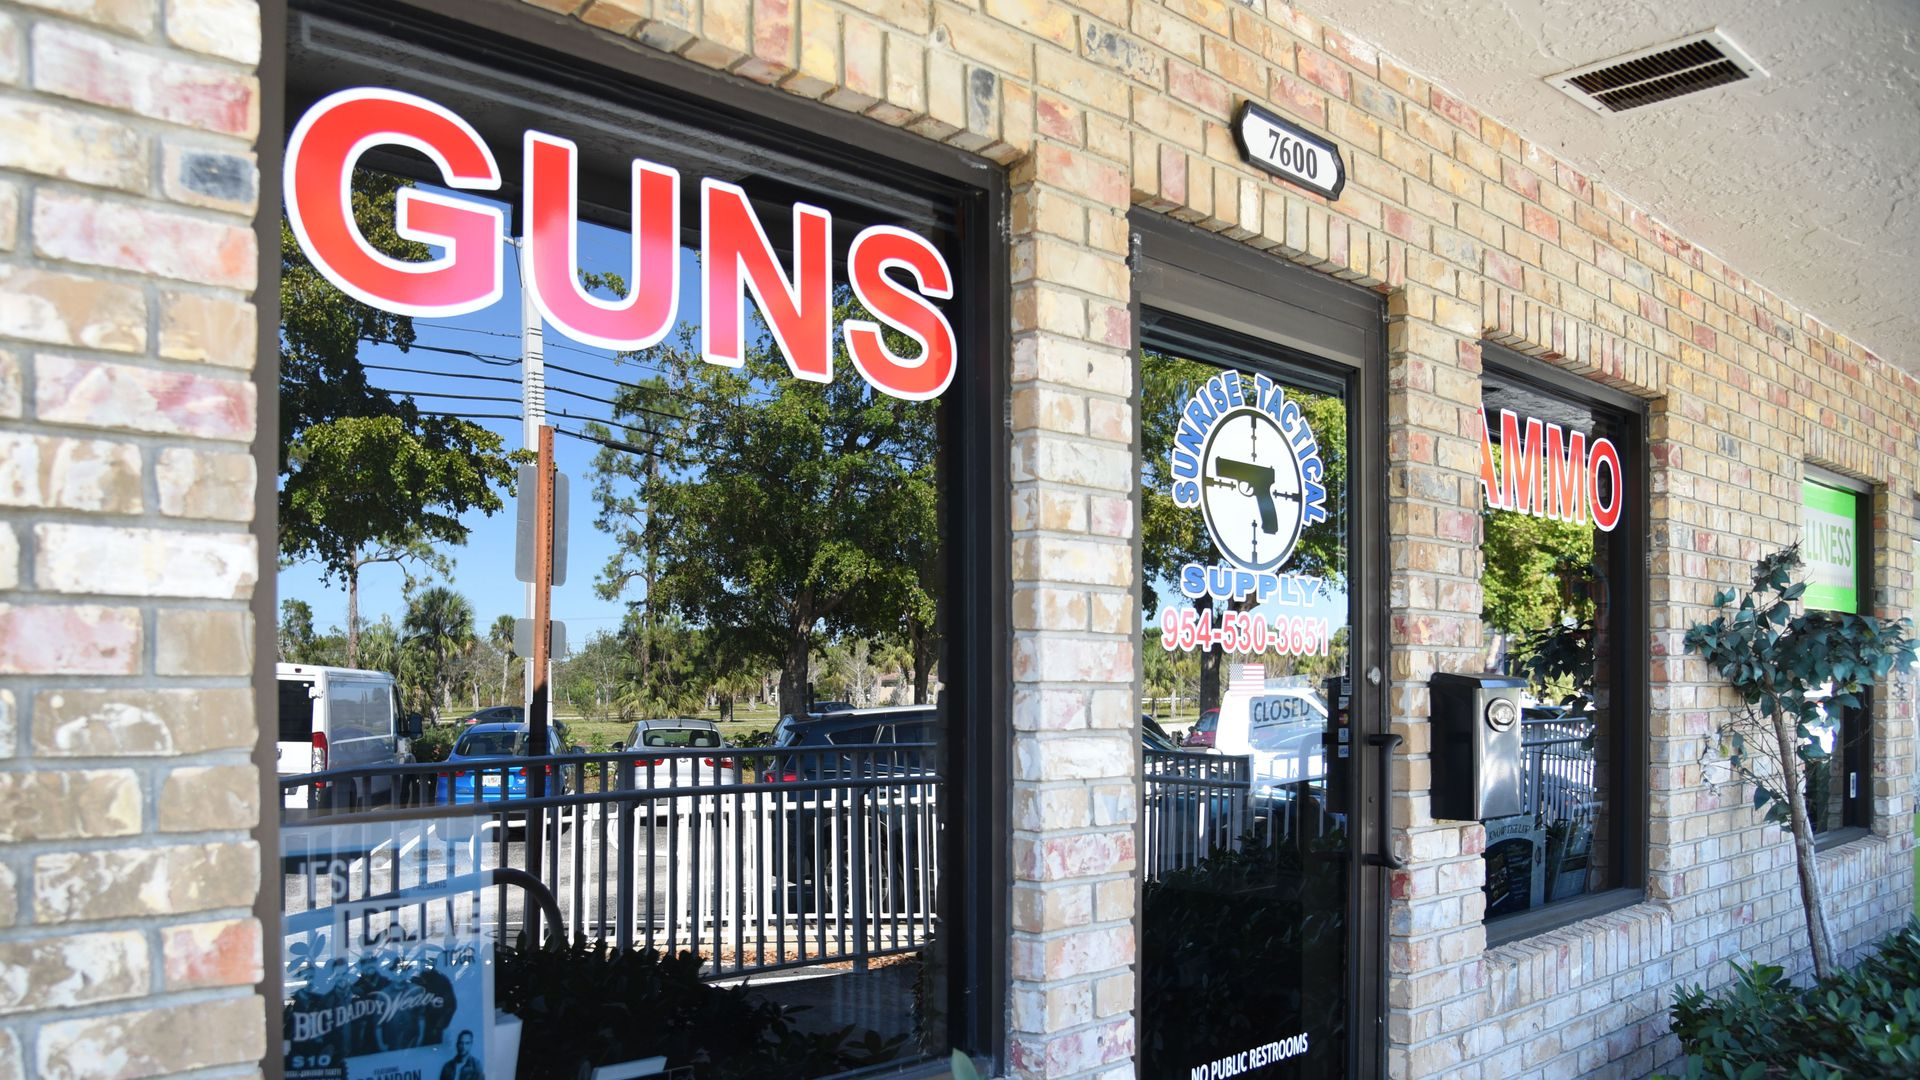 Outside view of Sunrise Tactical Supply store in Coral Springs, Florida on February 16, 2018 where school shooter Nikolas Cruz bought his AR-15 to gun down students at Marjory Stoneman High School.